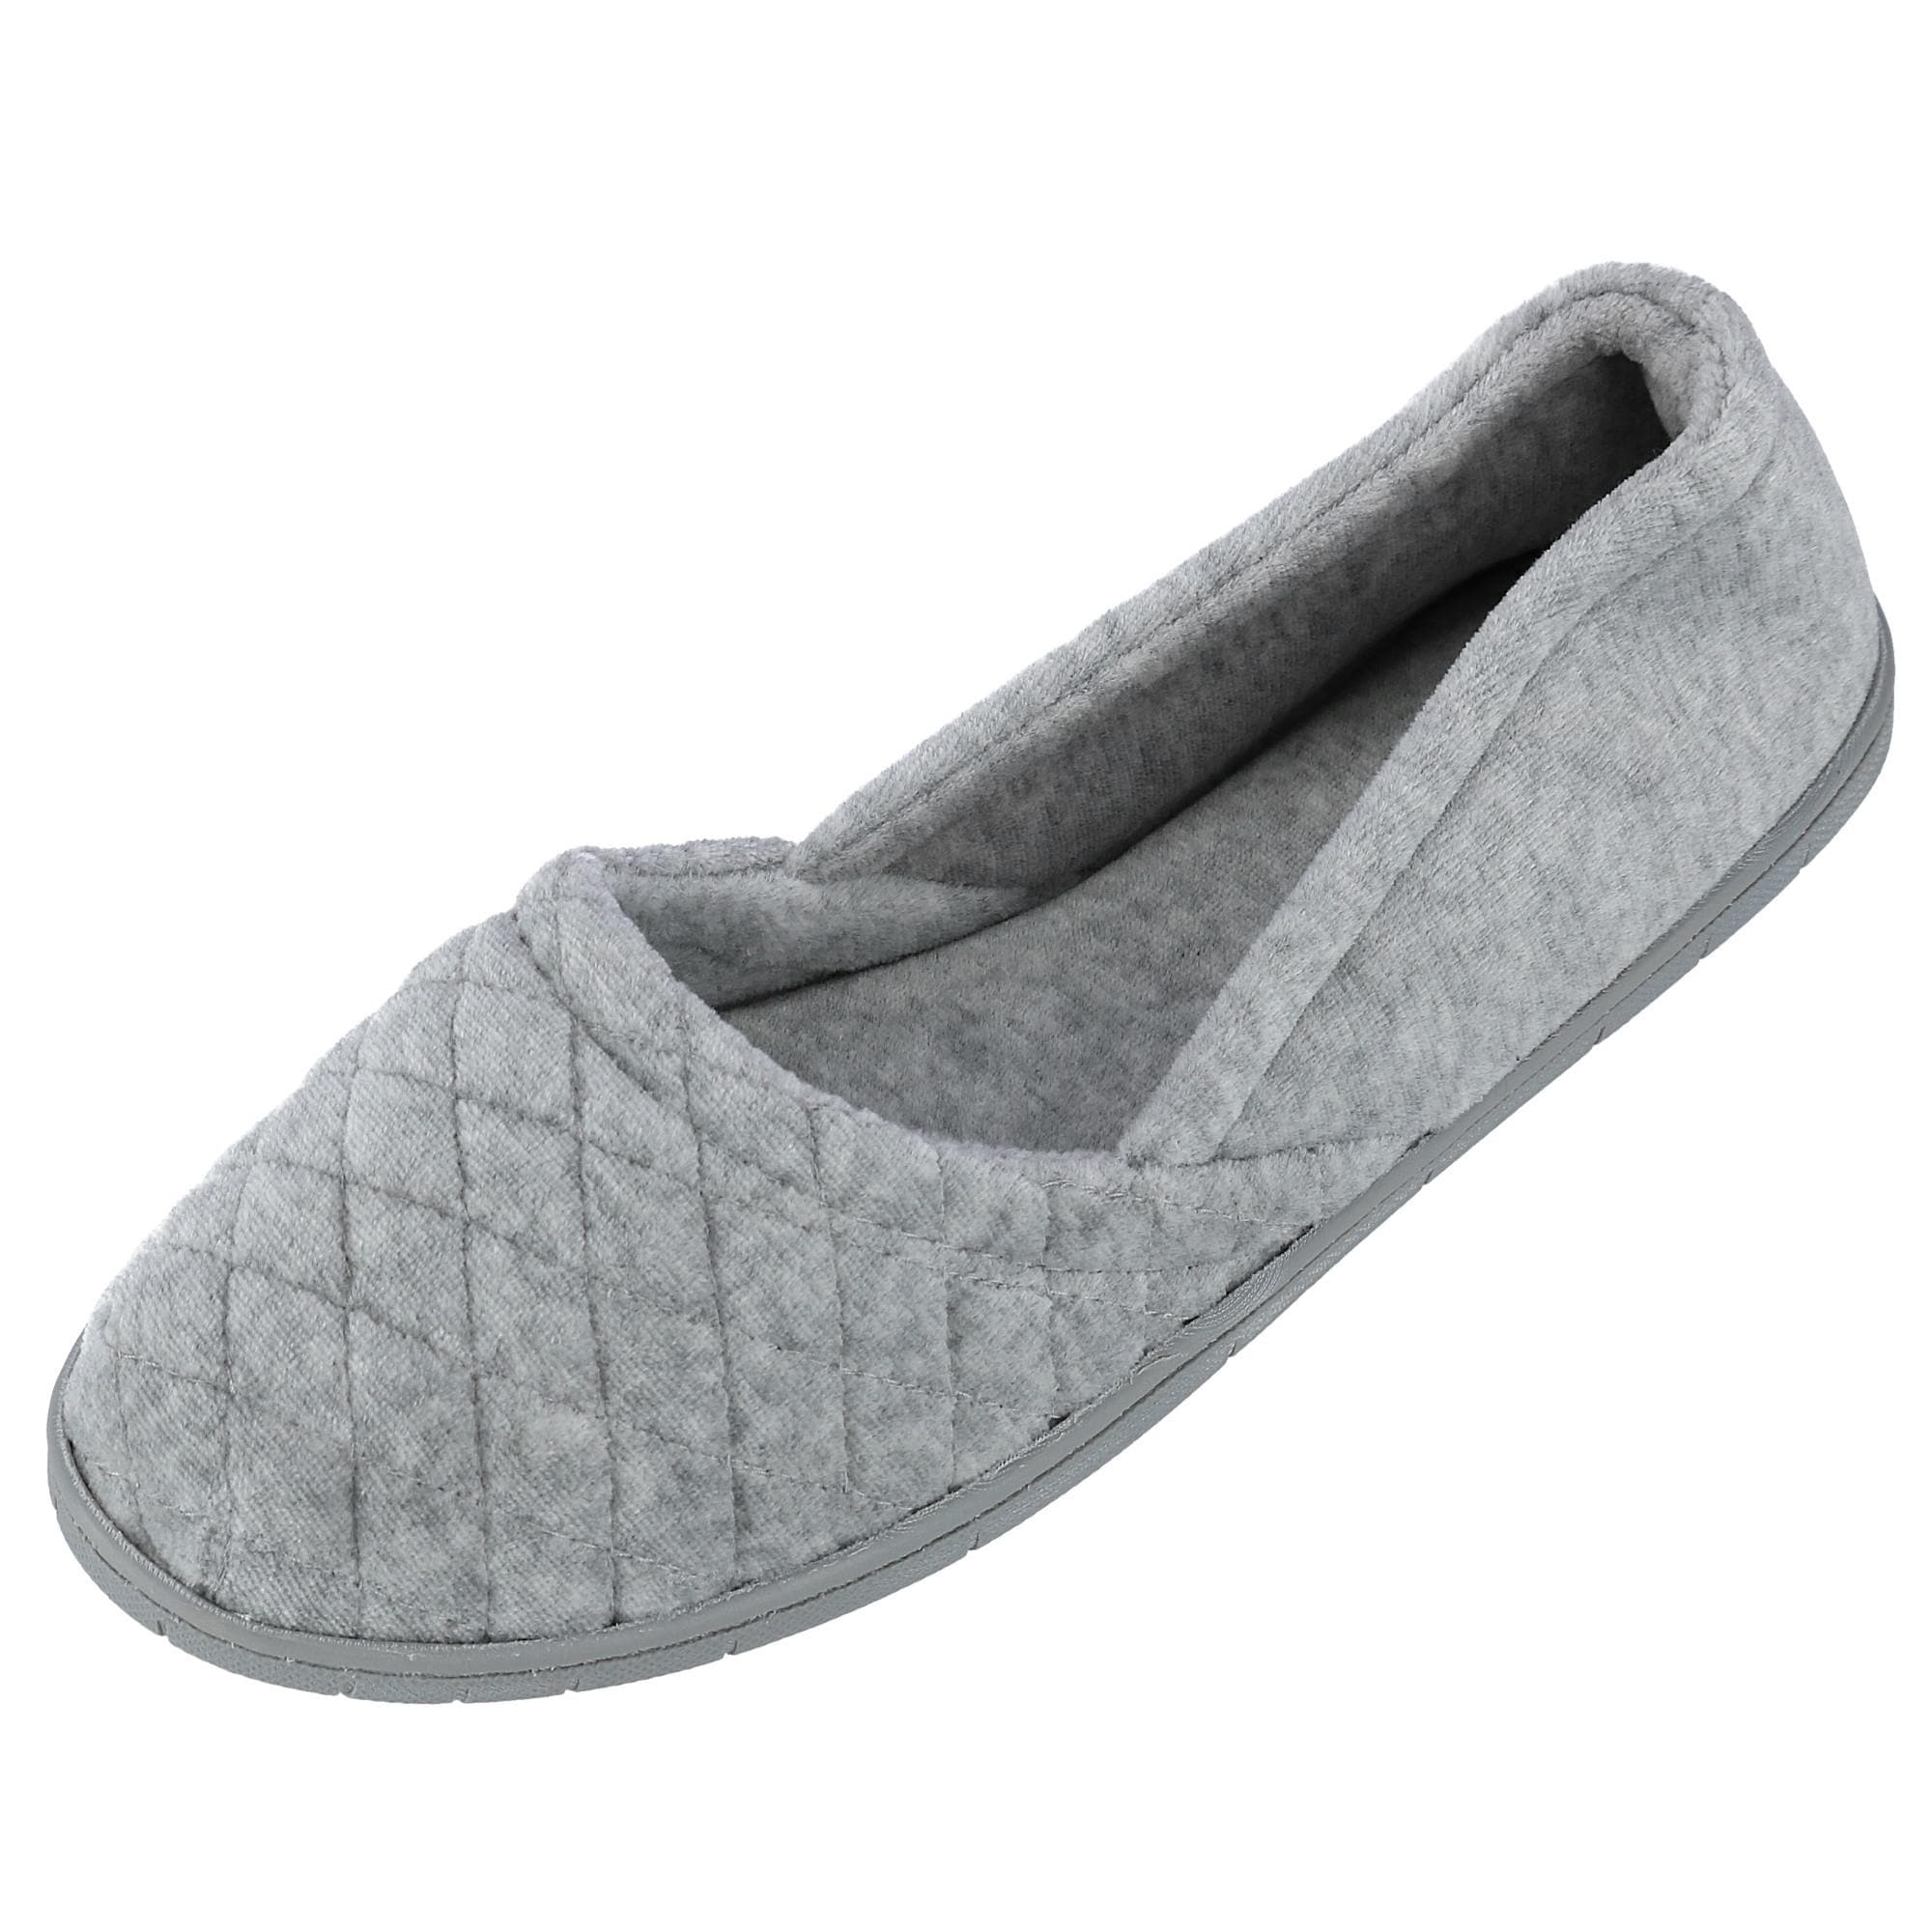 a7685a961487 Shop Dearfoams Women s Velour Espadrille Slippers with Microfiber Insole -  Free Shipping On Orders Over  45 - Overstock - 15420574